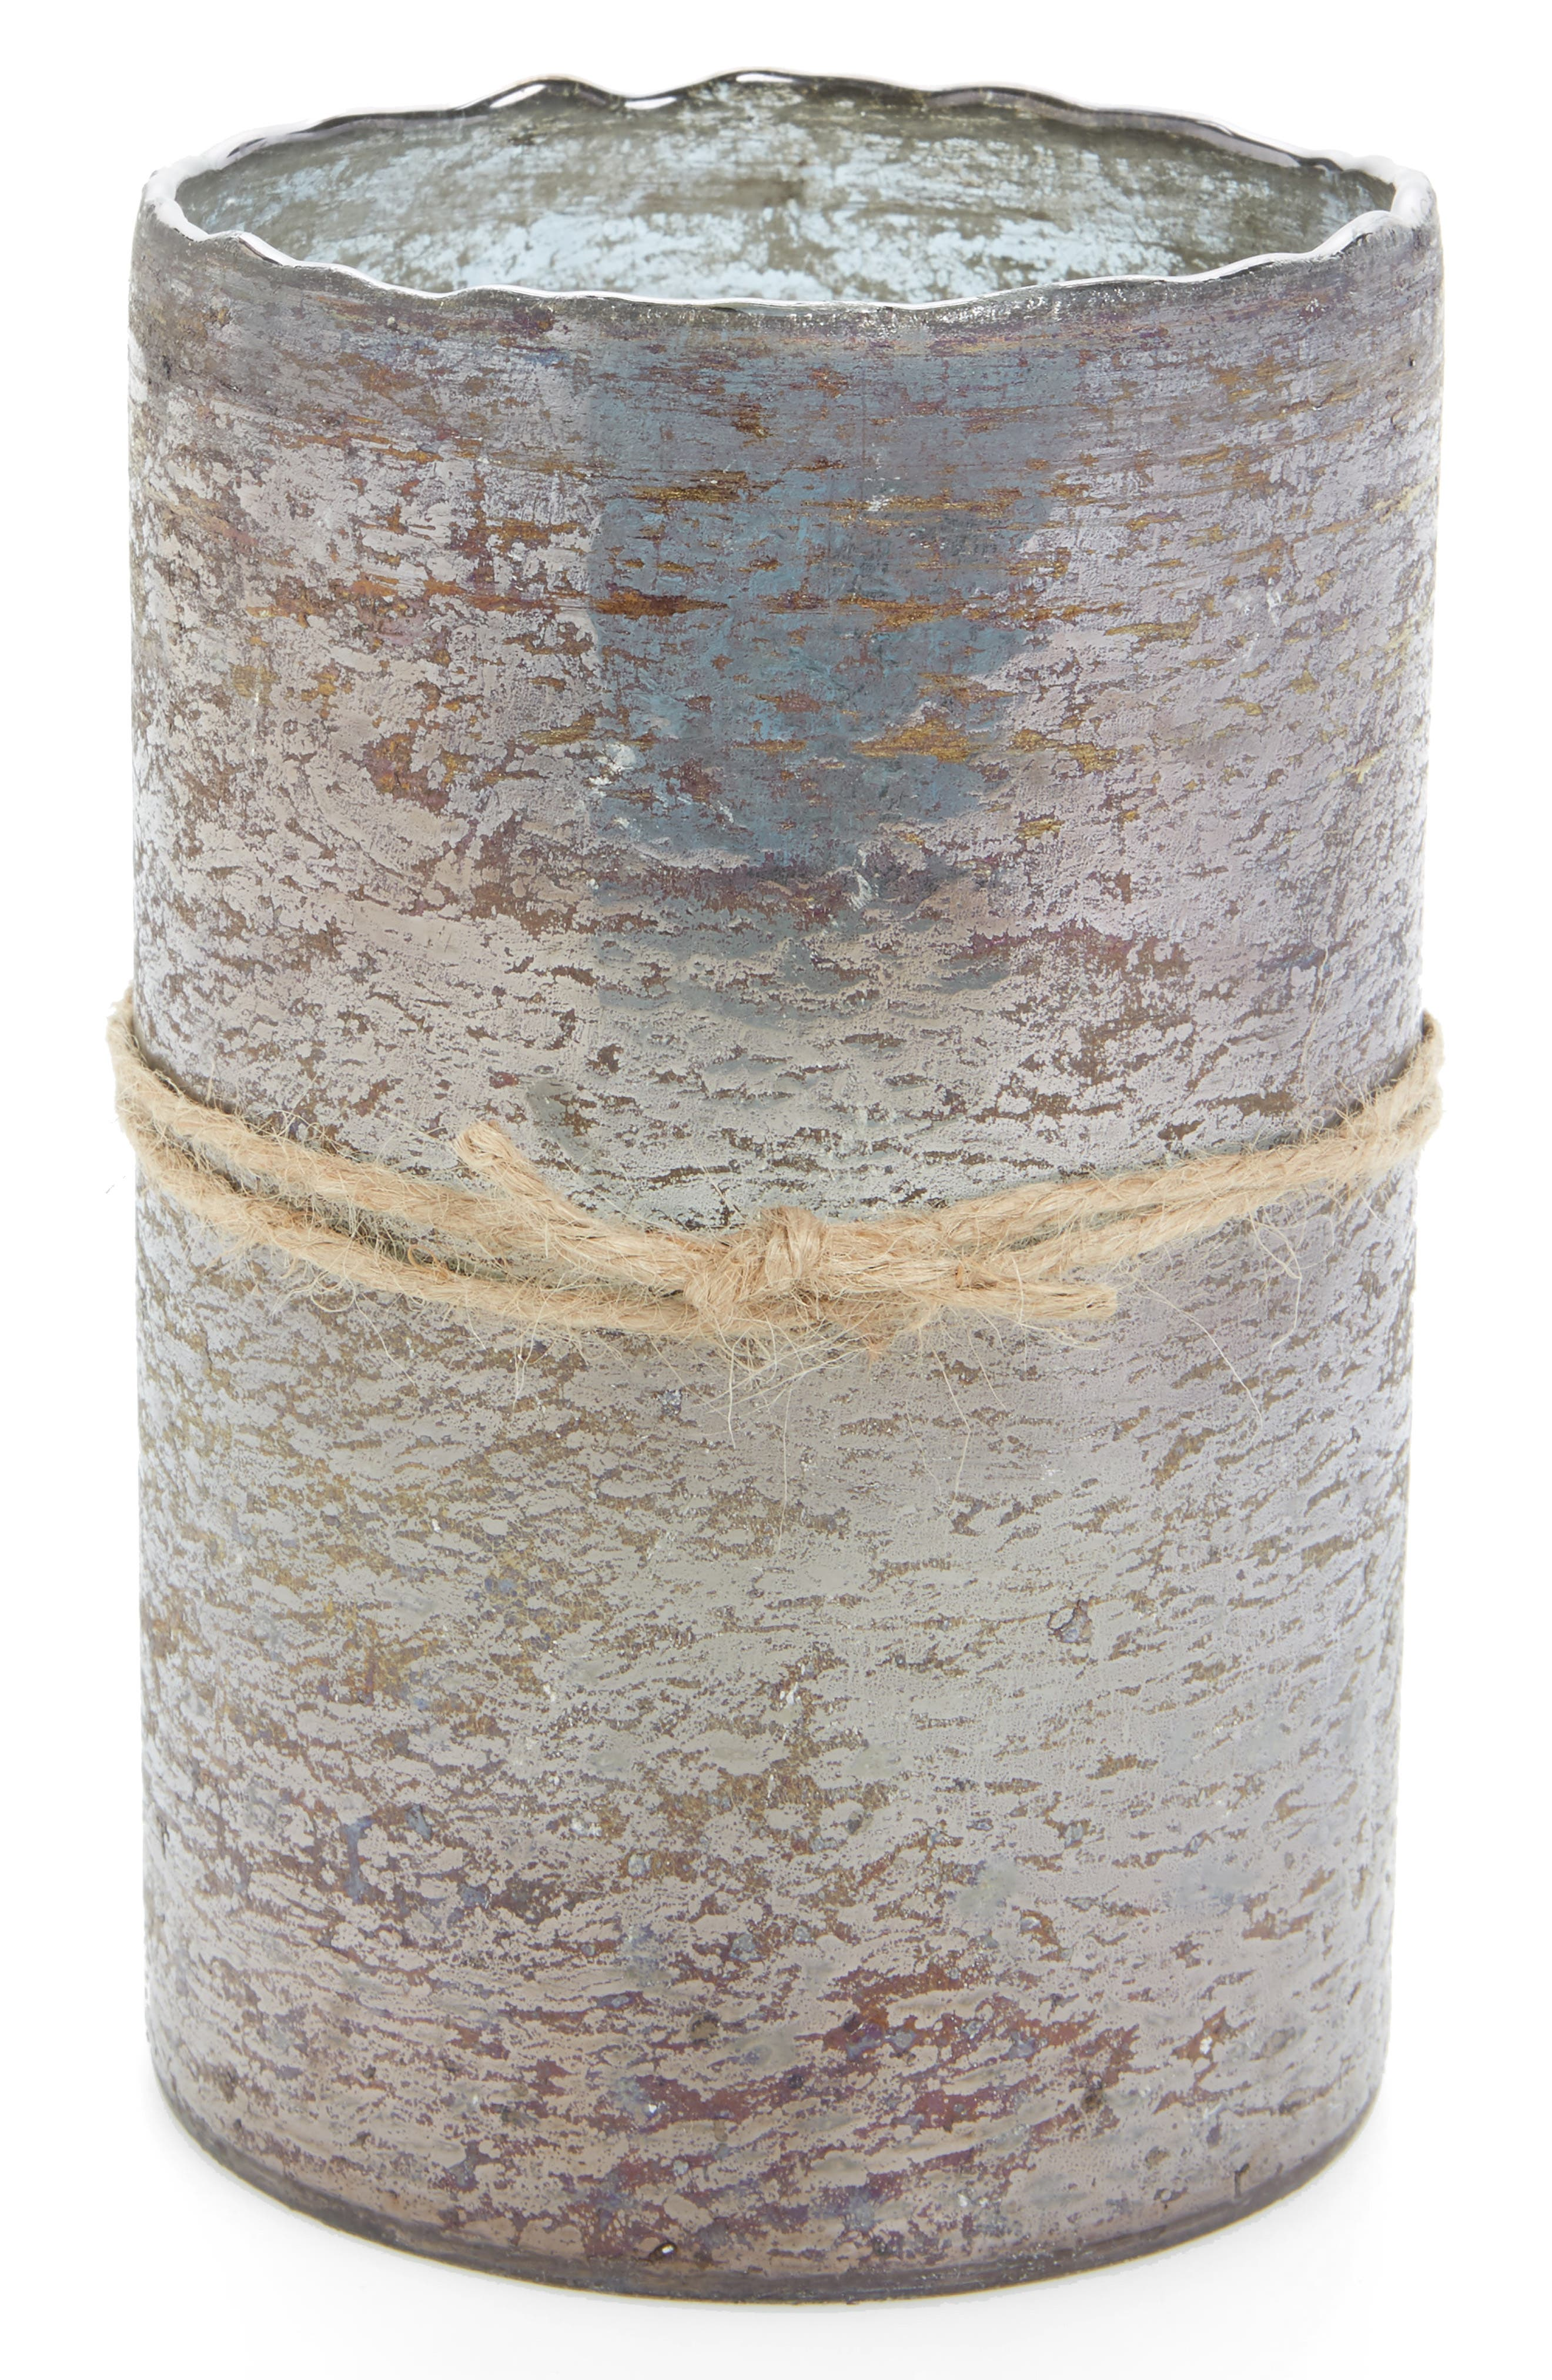 Himalayan Trading Post Smoky Grey Scented Hurricane Candle